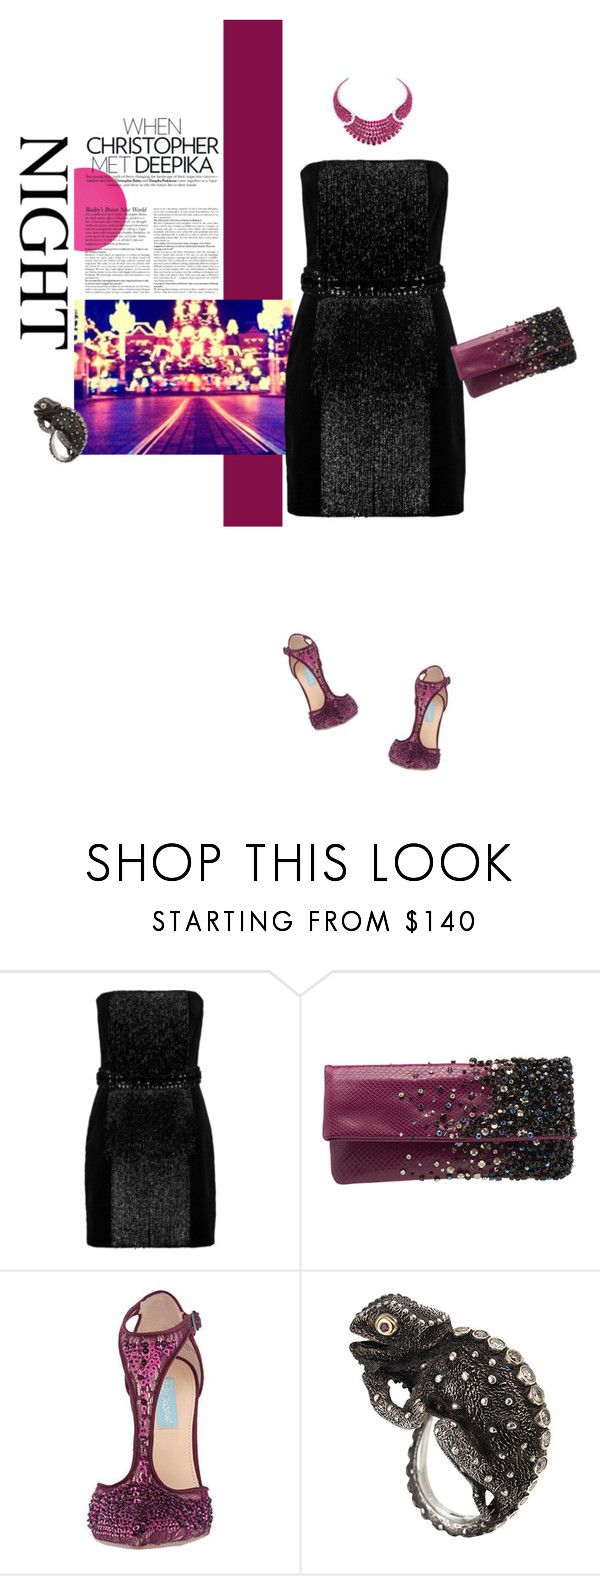 """""""Portami a ballare"""" by piccolauby ❤ liked on Polyvore featuring Justin Bieber, Balmain, Jimmy Choo, Betsey Johnson and Manya & Roumen"""